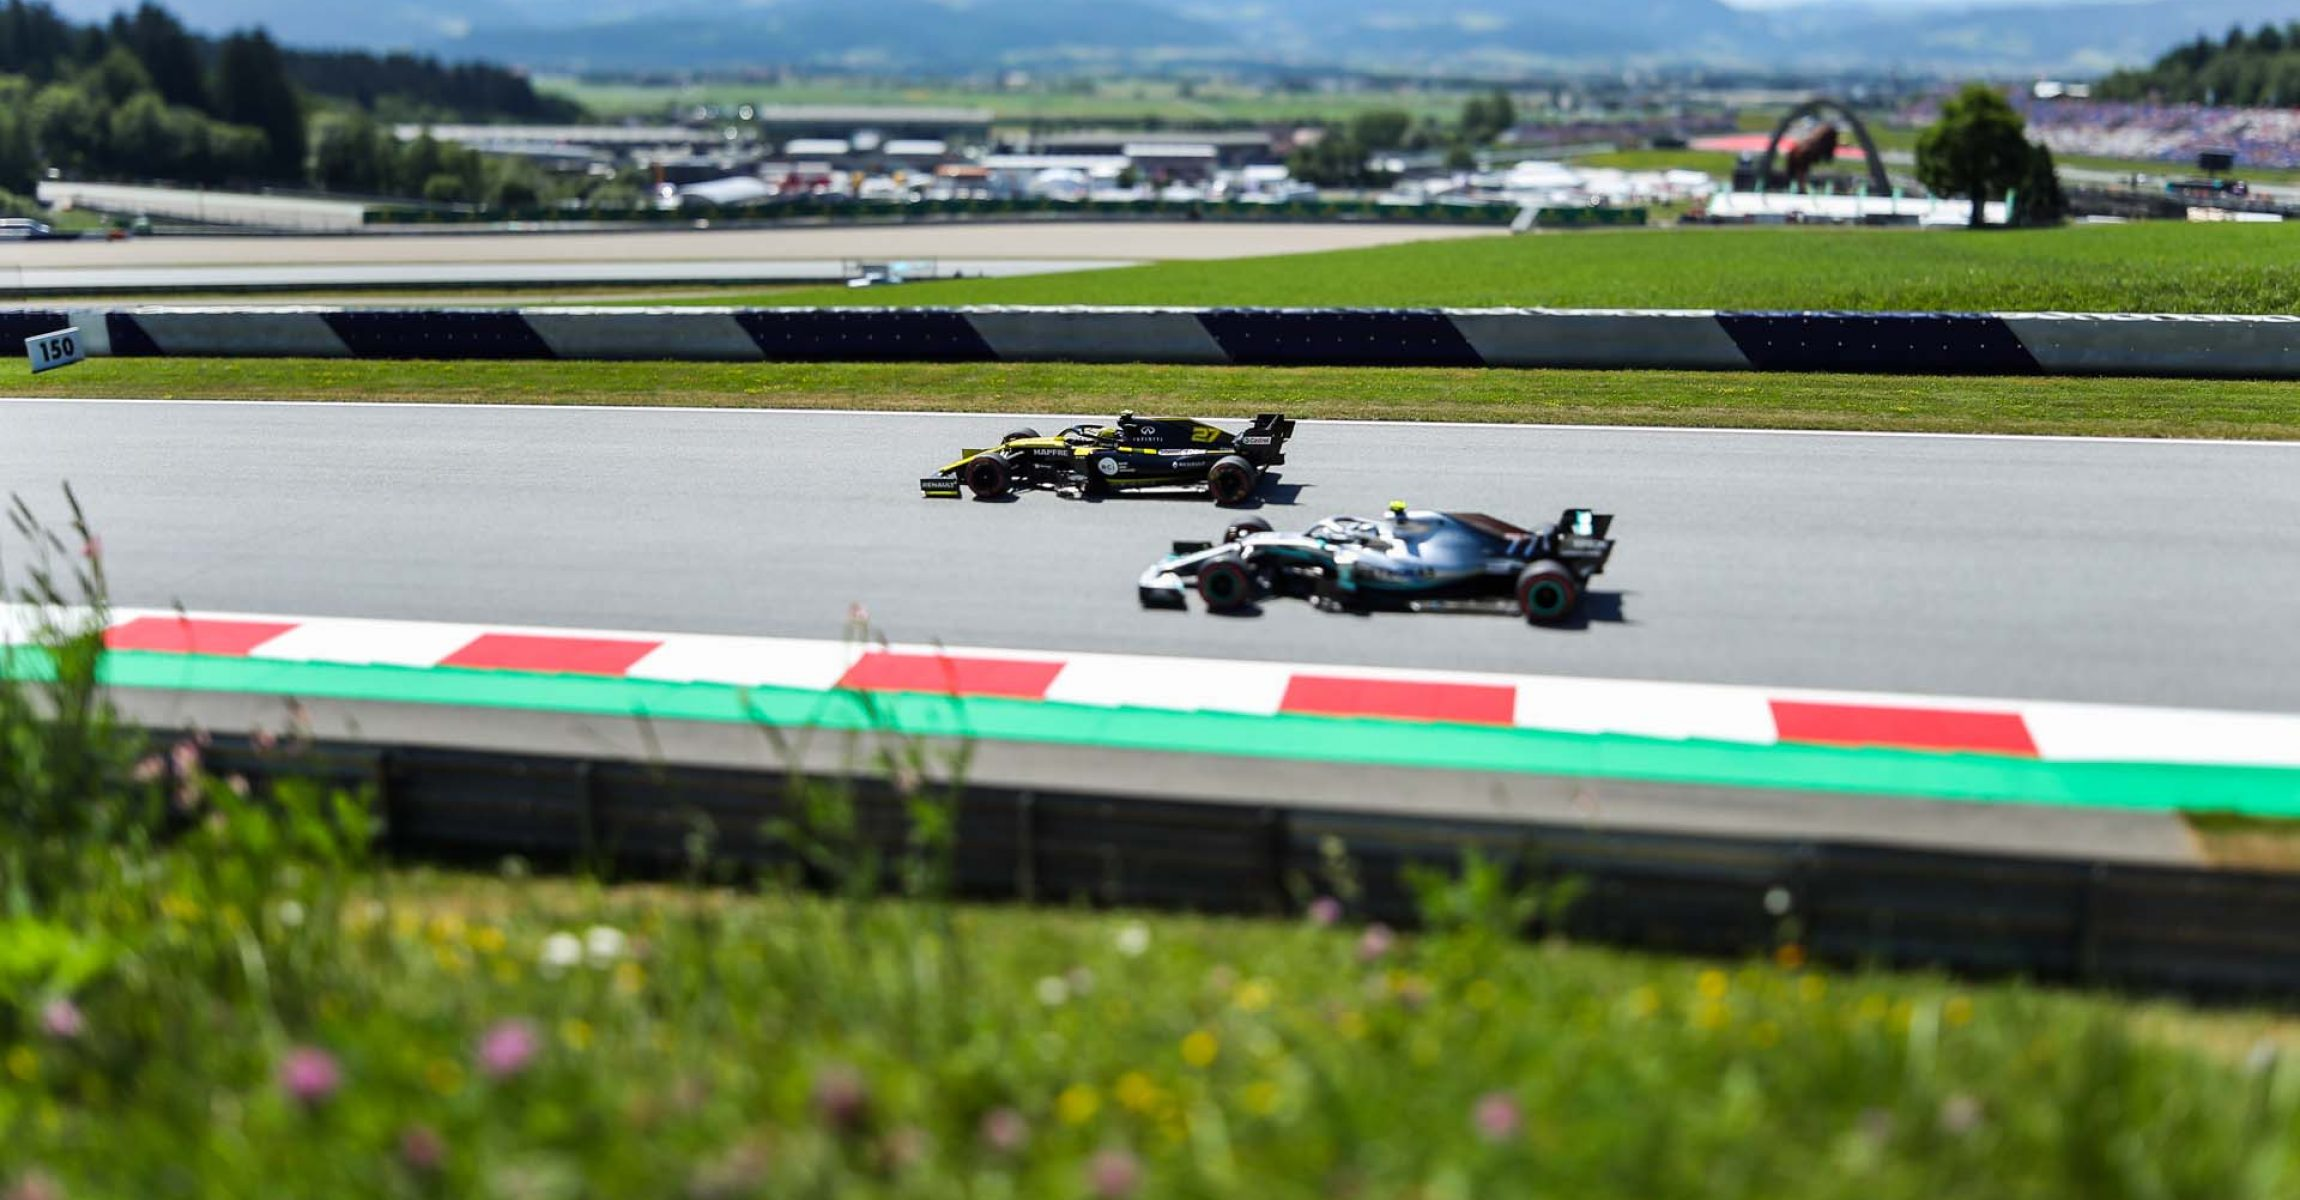 SPIELBERG,AUSTRIA,28.JUN.19 - MOTORSPORTS, FORMULA 1 - Grand Prix of Austria, Red Bull Ring, free practice. Image shows Nico Huelkenberg (GER/ Renault) and Valtteri Bottas (FIN/ Mercedes). Photo: GEPA pictures/ Daniel Goetzhaber // GEPA pictures/Red Bull Content Pool // AP-1ZSN4H9GW1W11 // Usage for editorial use only // Please go to www.redbullcontentpool.com for further information. //